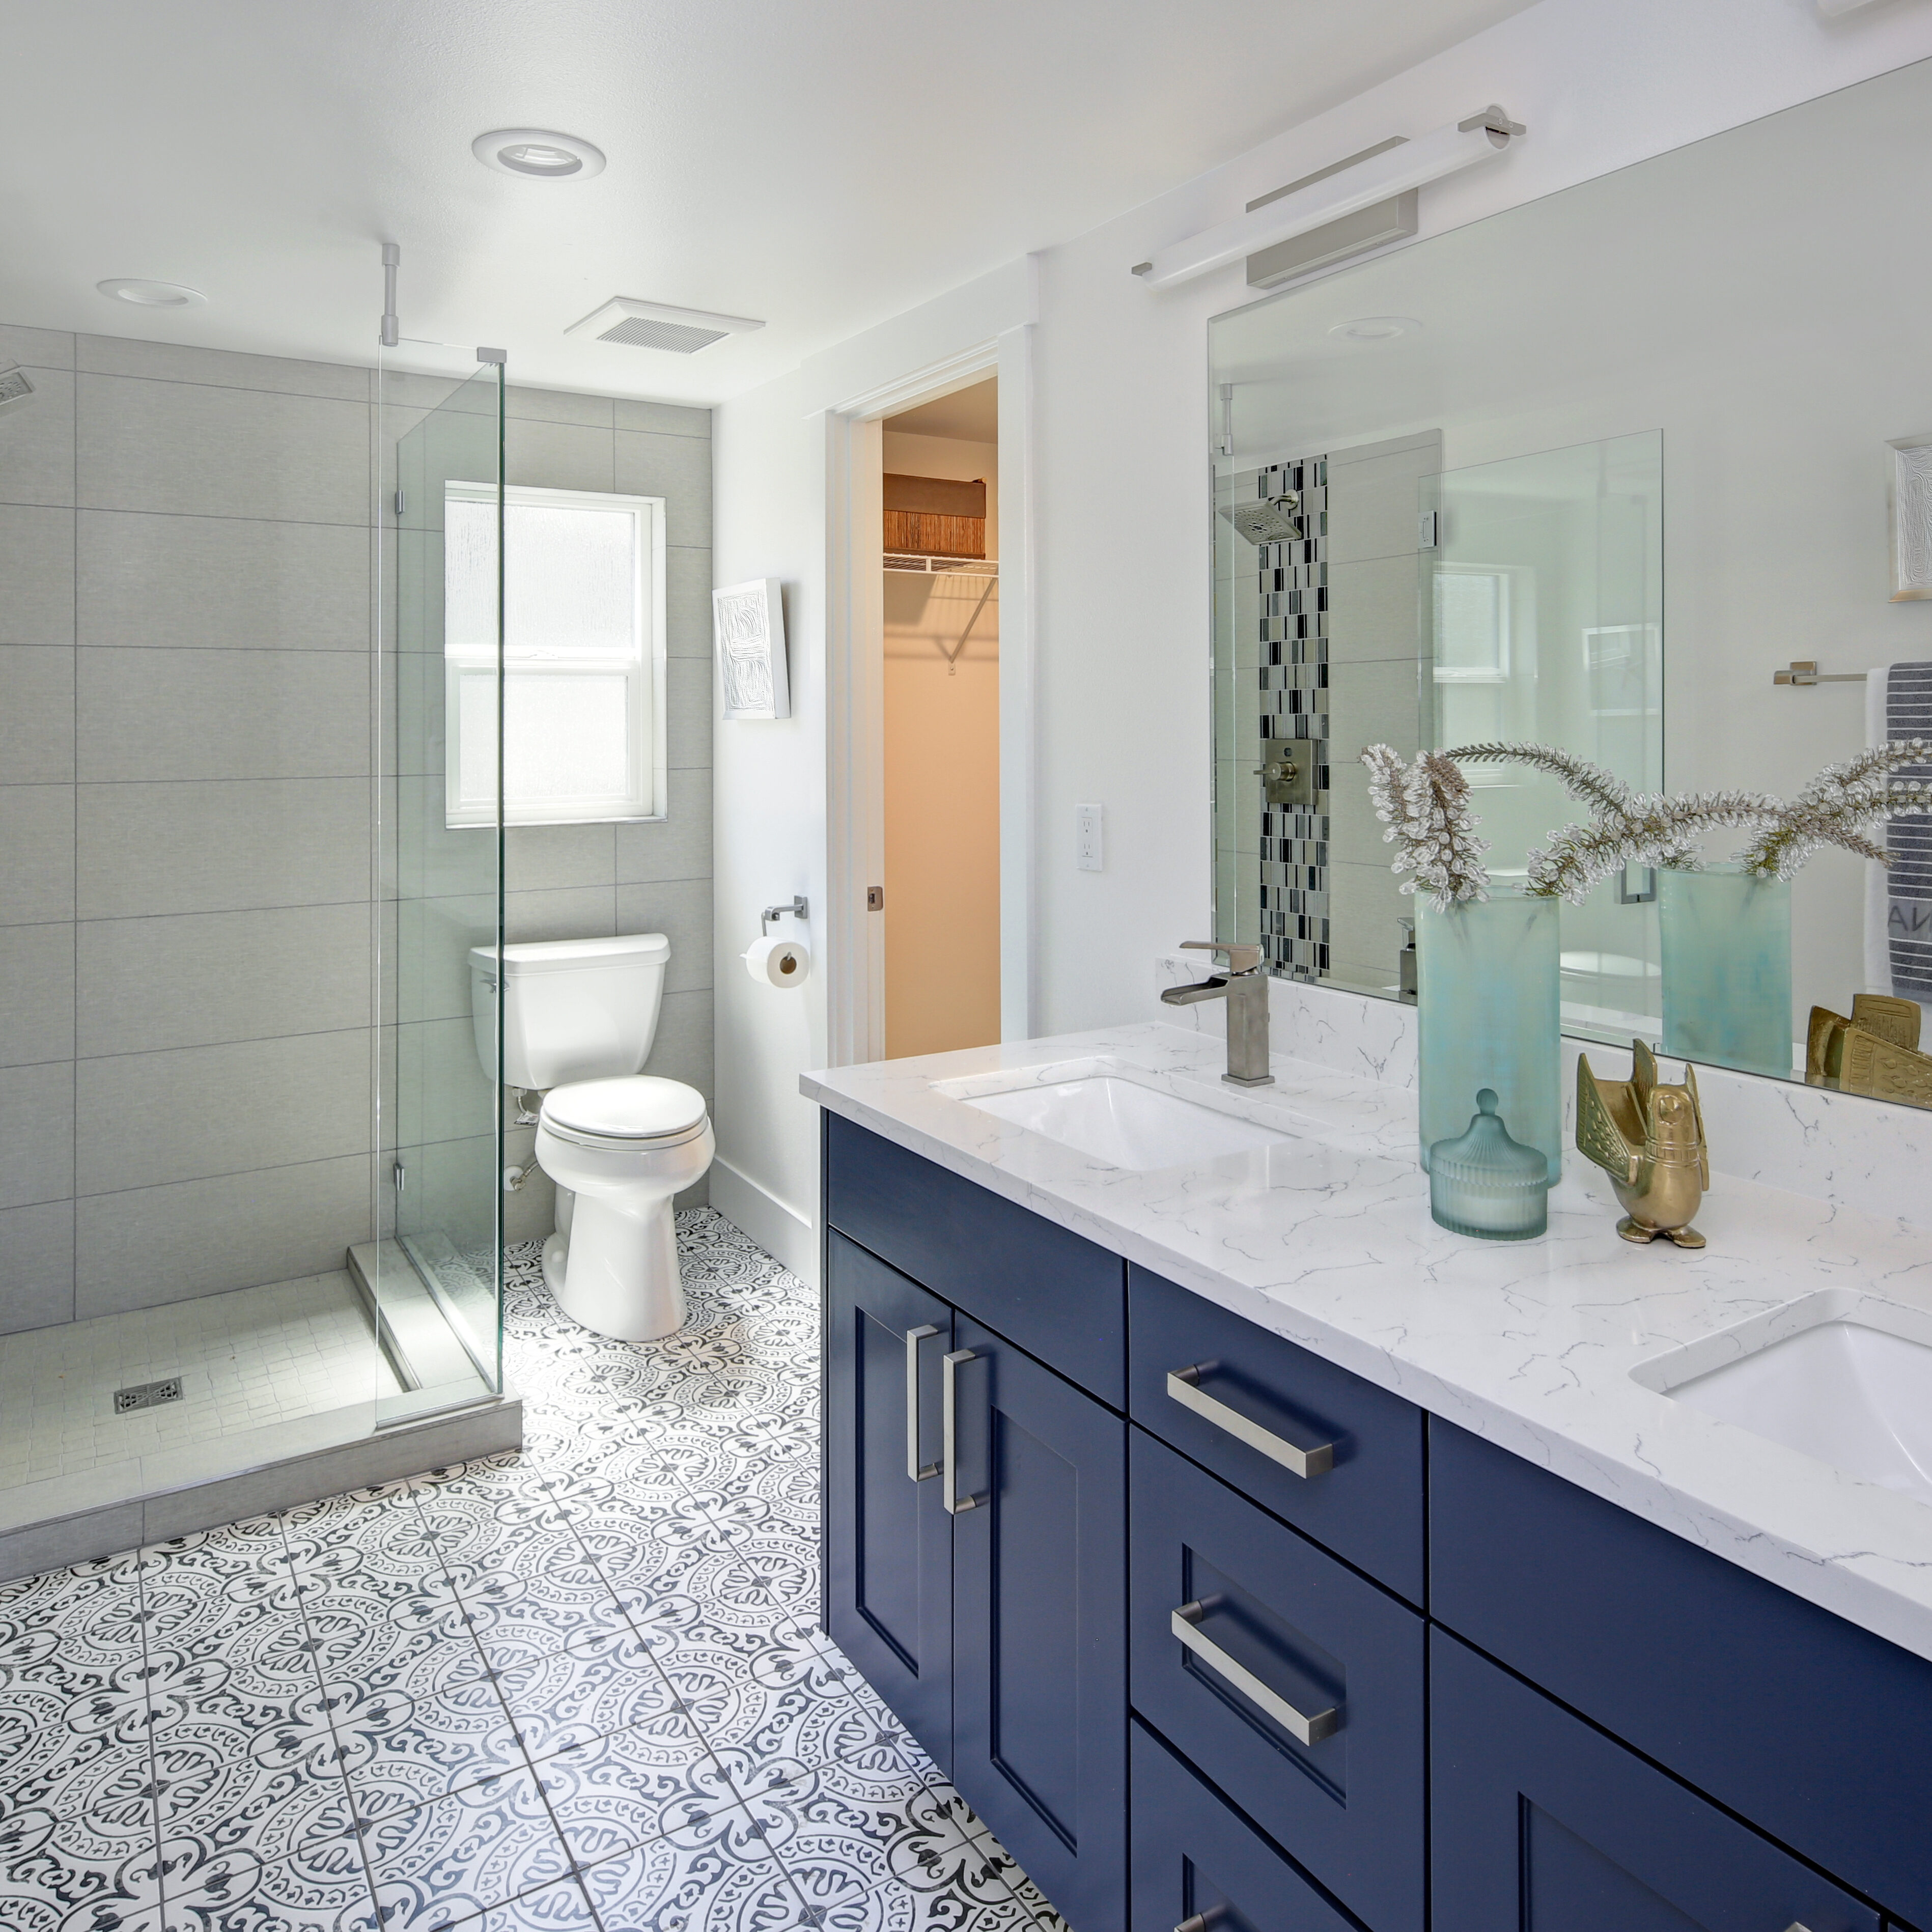 Modern bathroom interior with blue double vanity and glass shower | Pierce Flooring